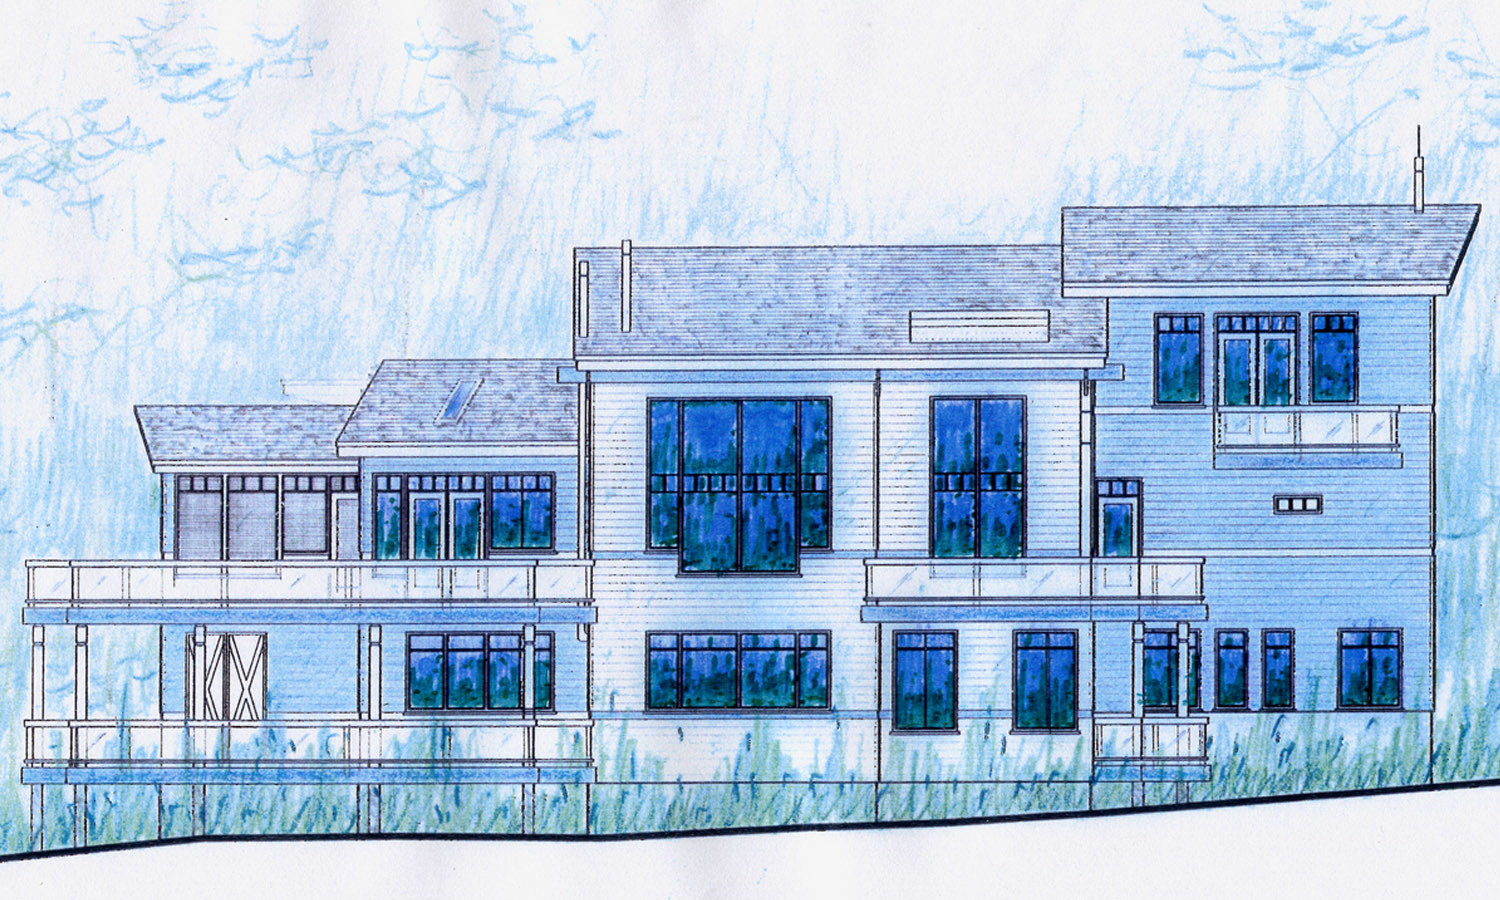 Elevation Sketch View of Rear Elevation (River Side)